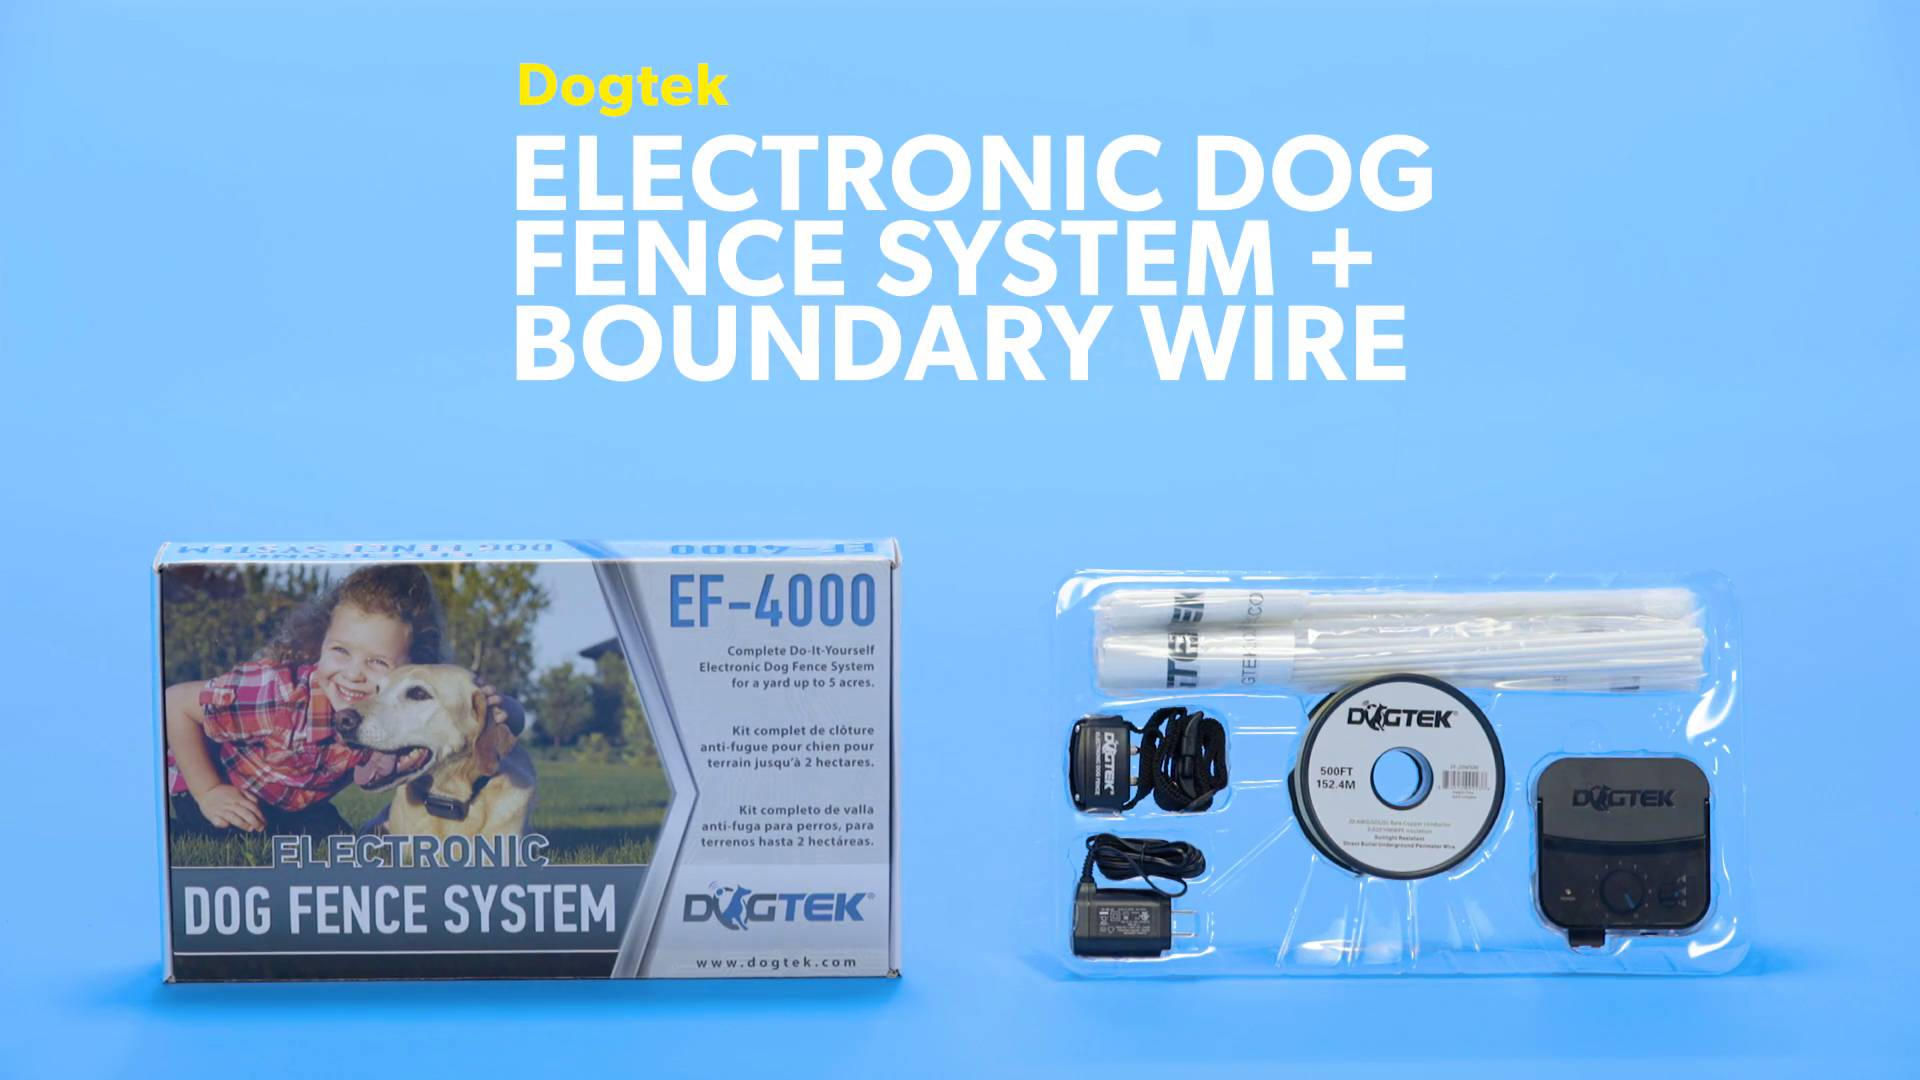 Dogtek electronic dog fence system chewy solutioingenieria Choice Image